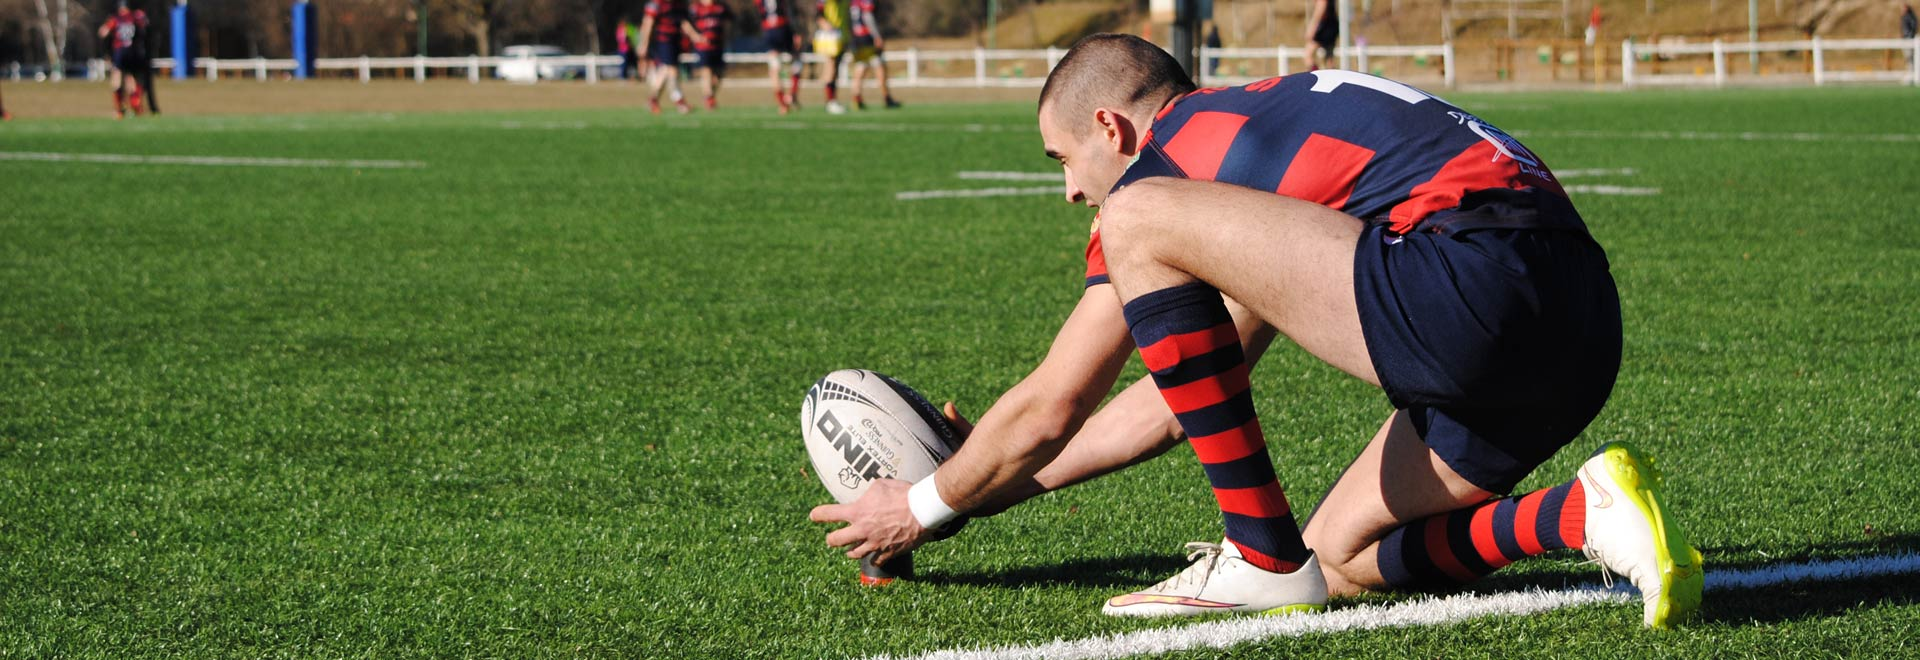 Valori del Rugby Paese